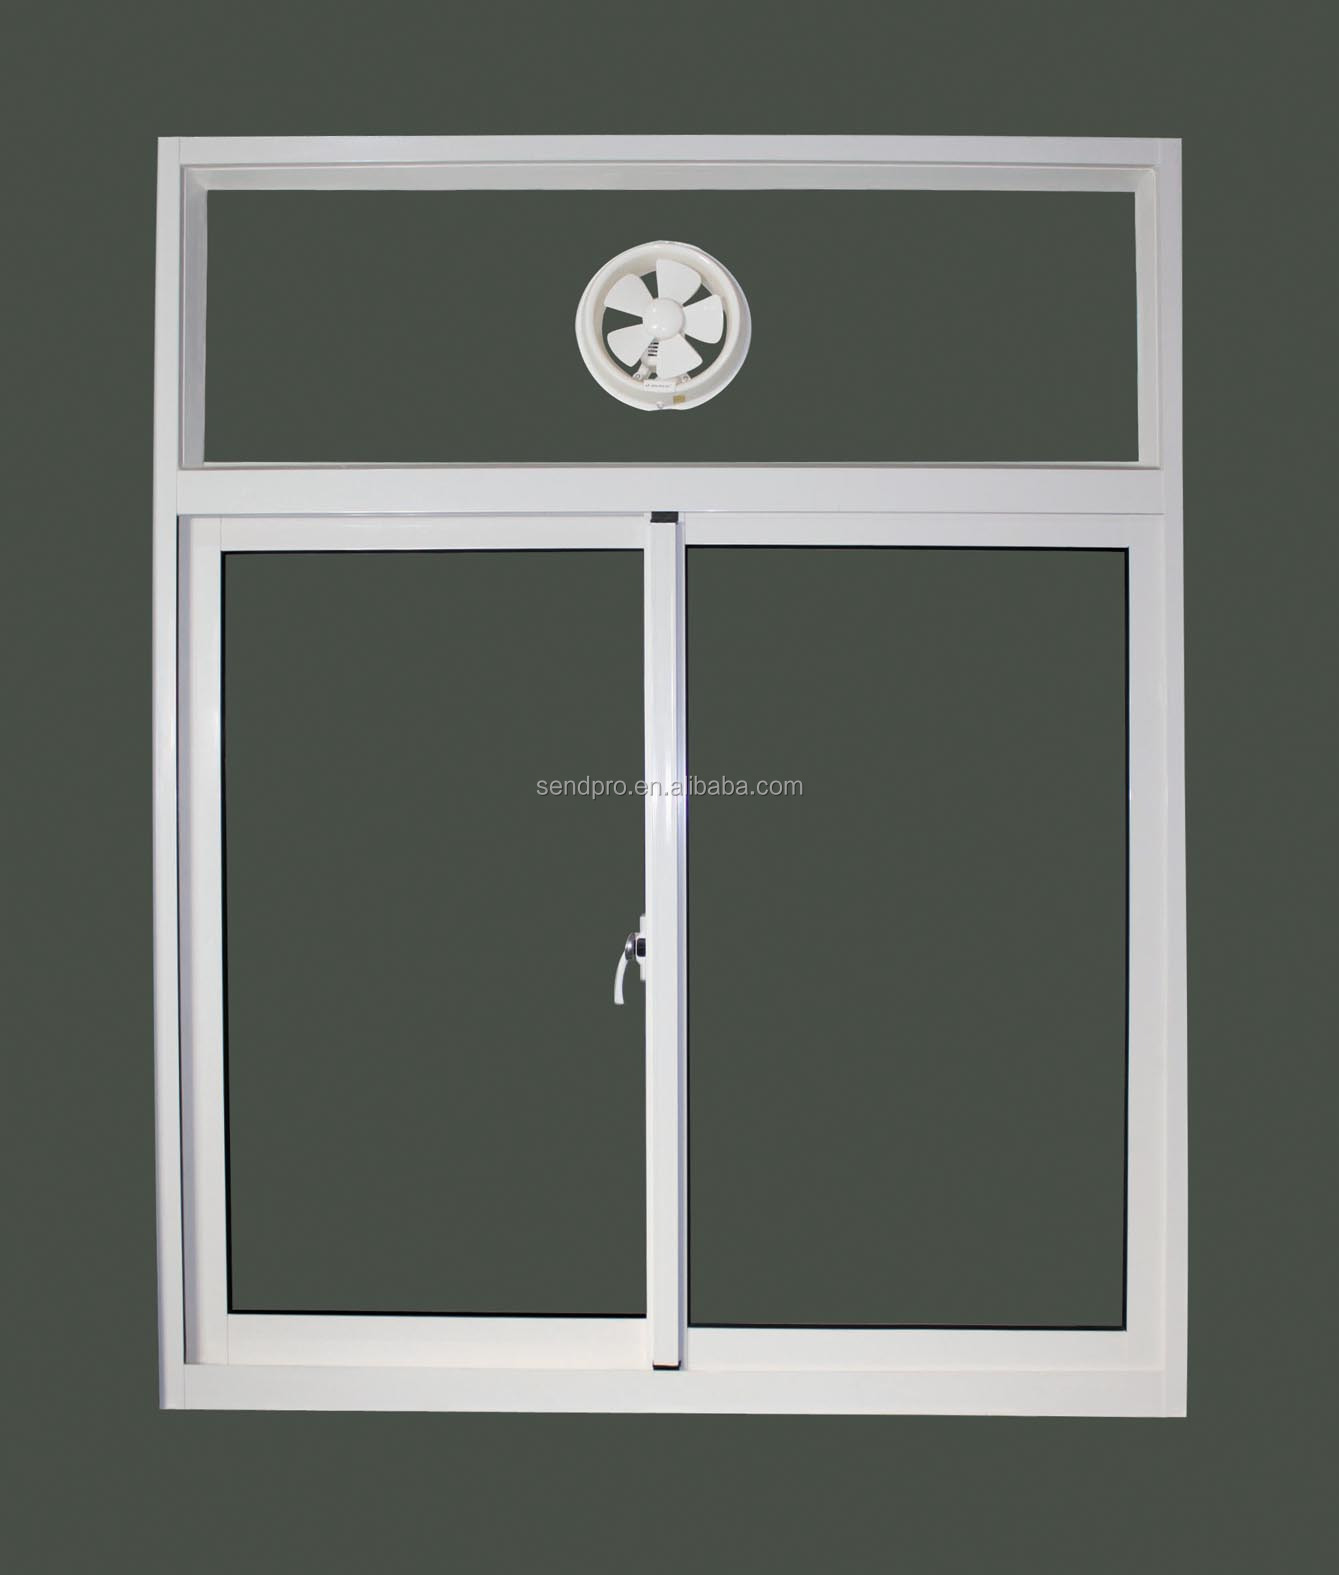 Sliding Door Ventilation : Exterior aluminum sliding glass window with ventilation